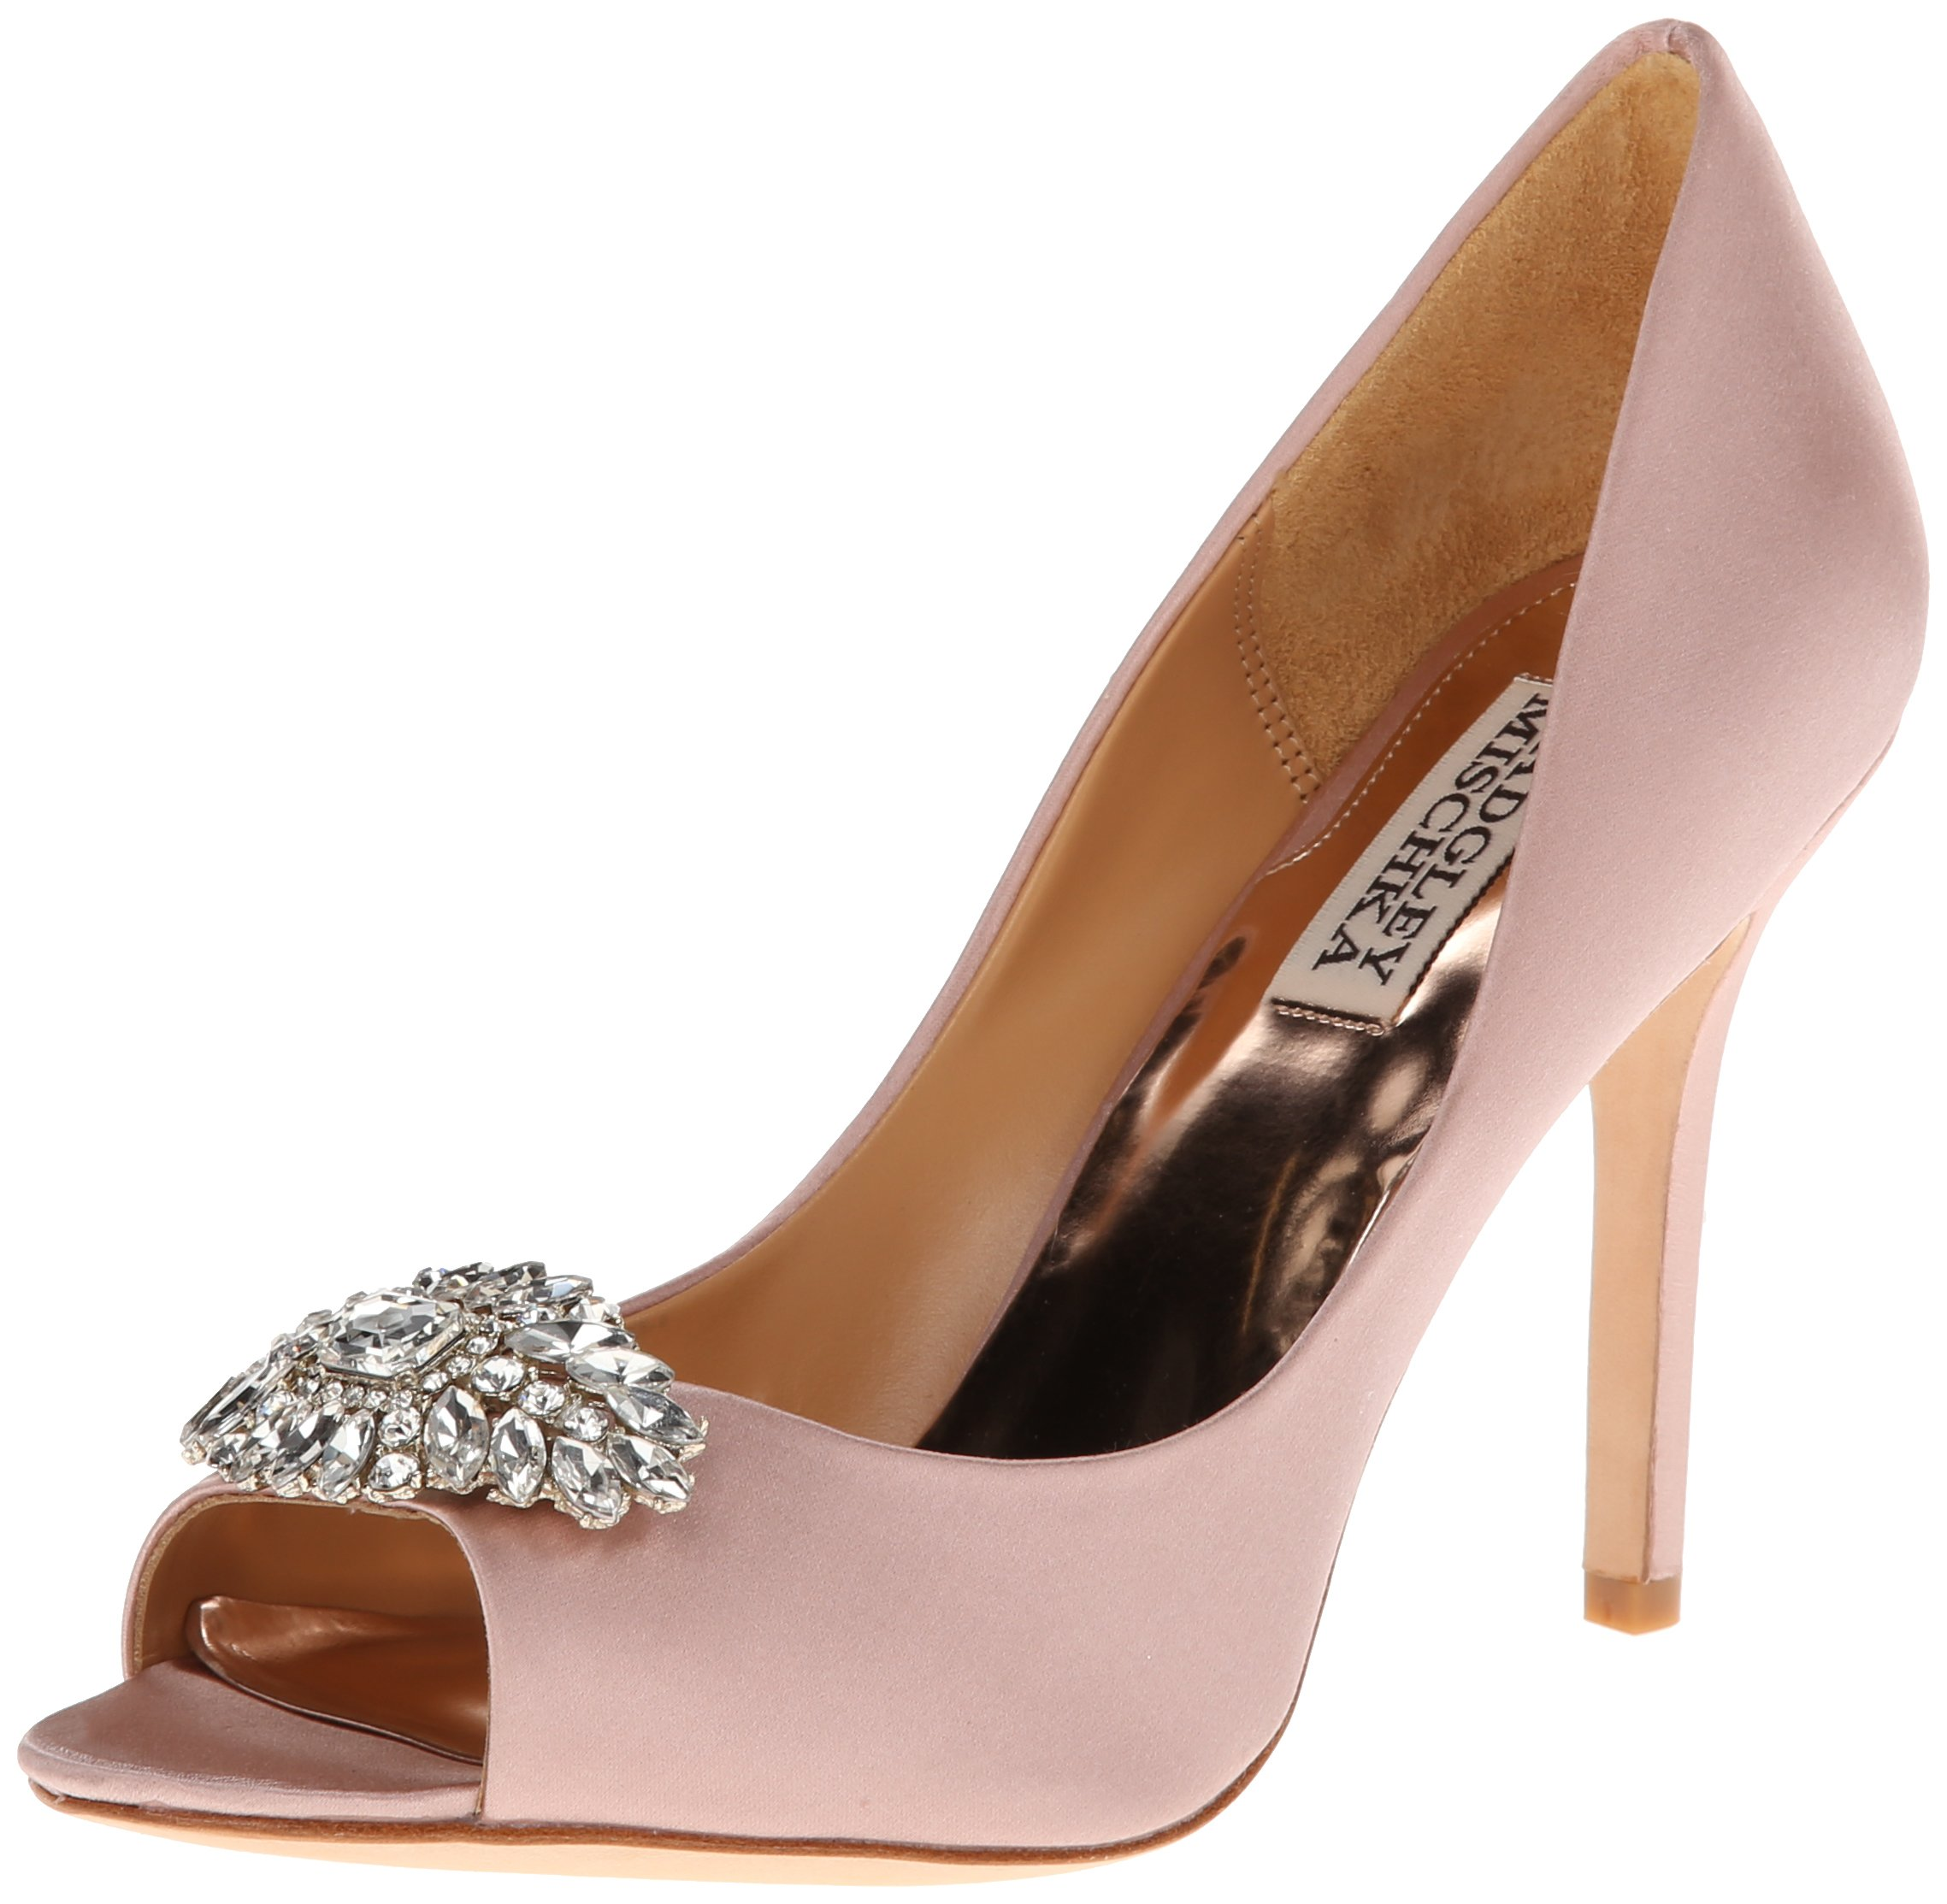 Badgley Mischka Women's Lavender II Dress Pump